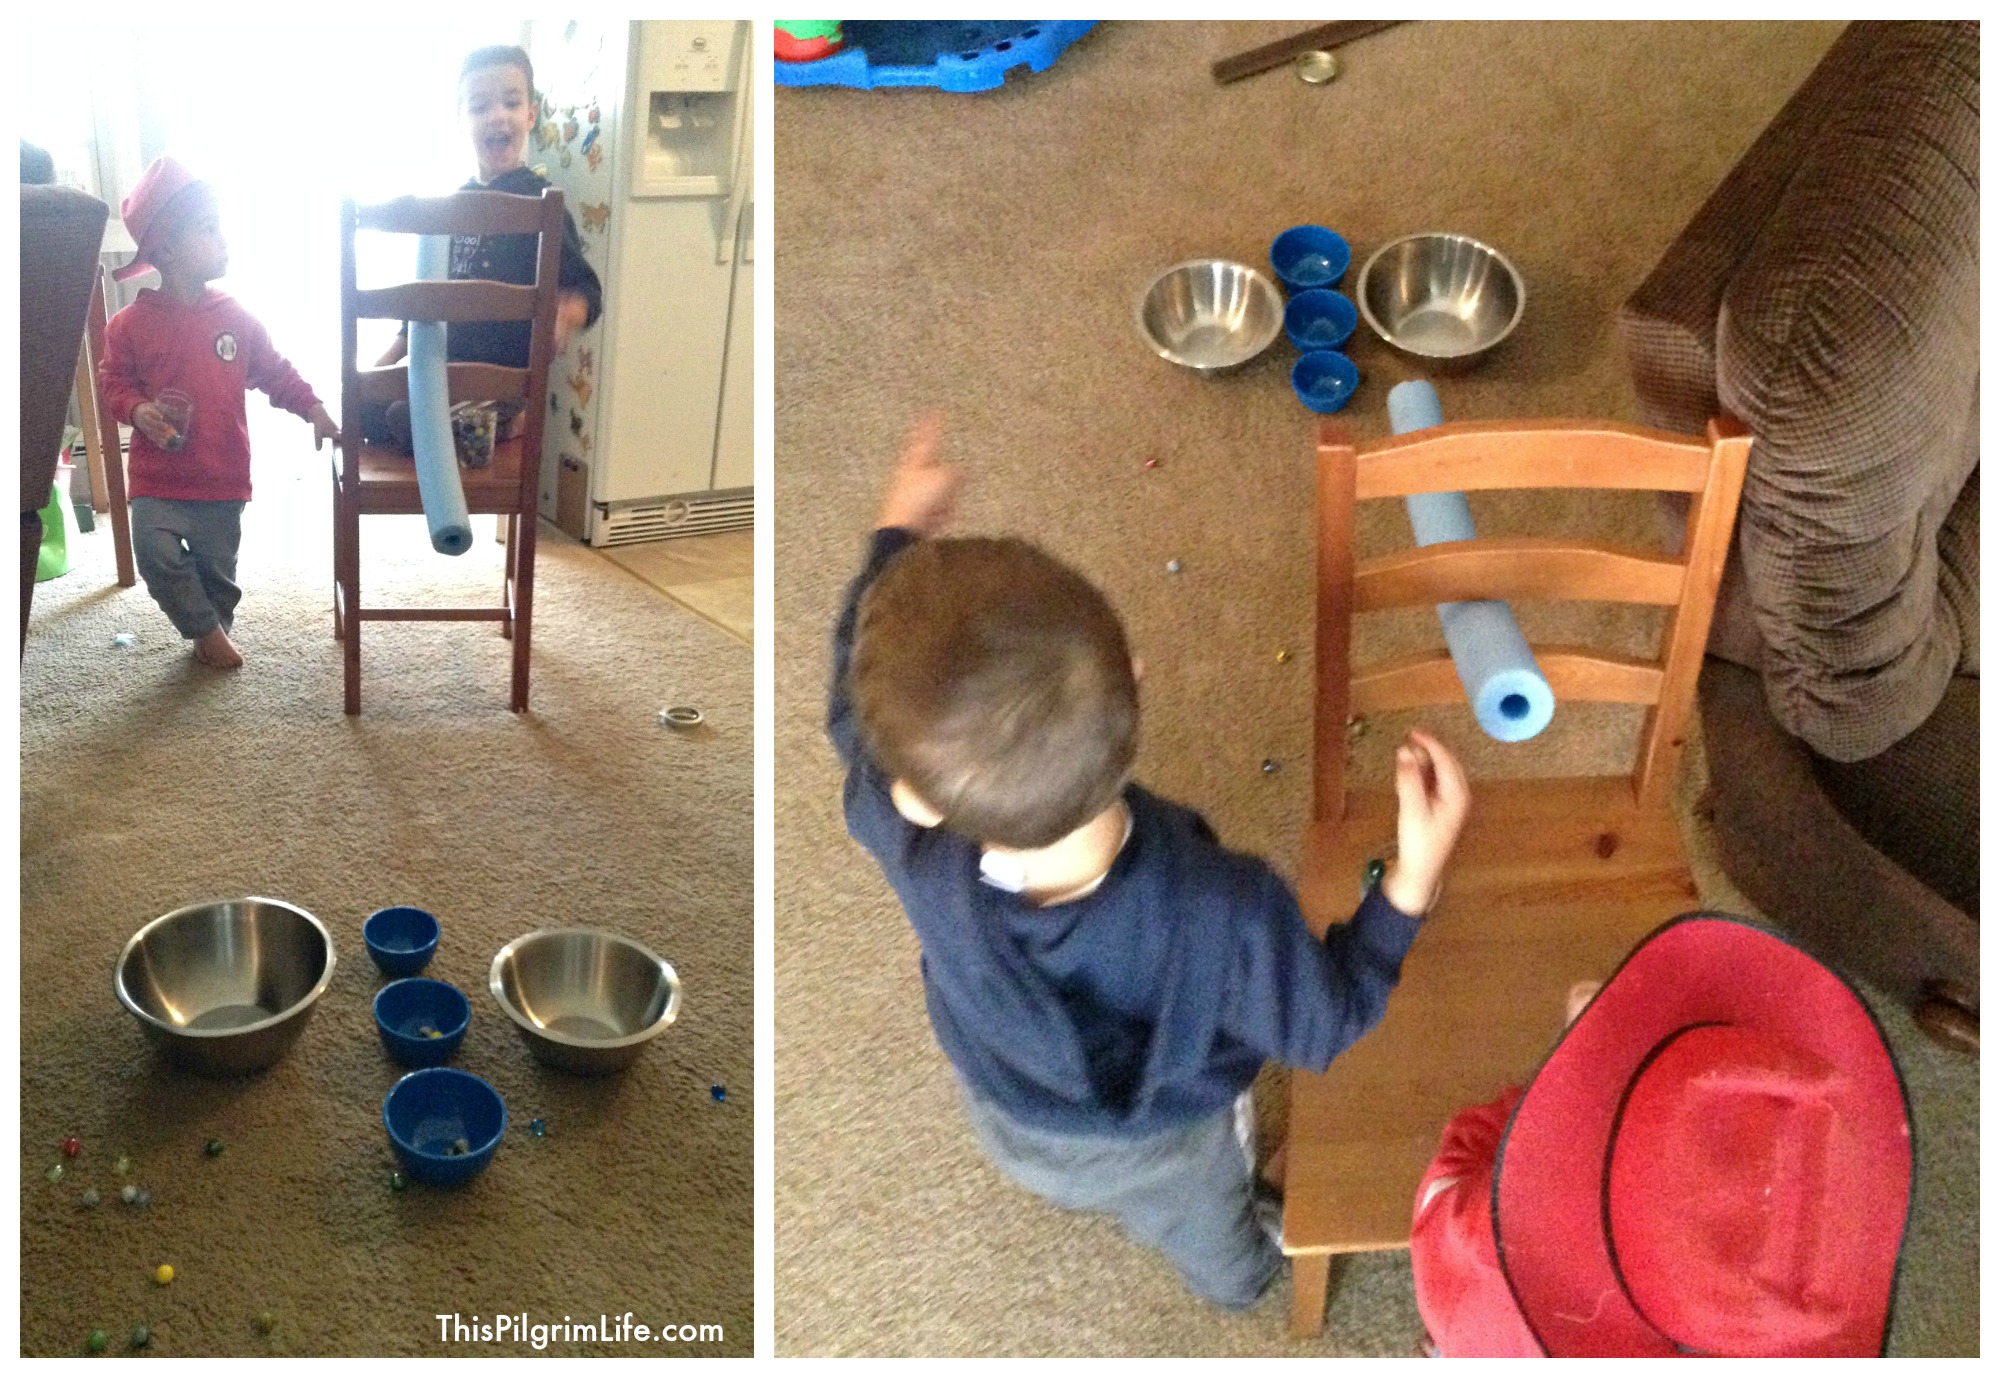 Make a fun ski ball game using a pool noodle, some marbles, and a few small bowls!